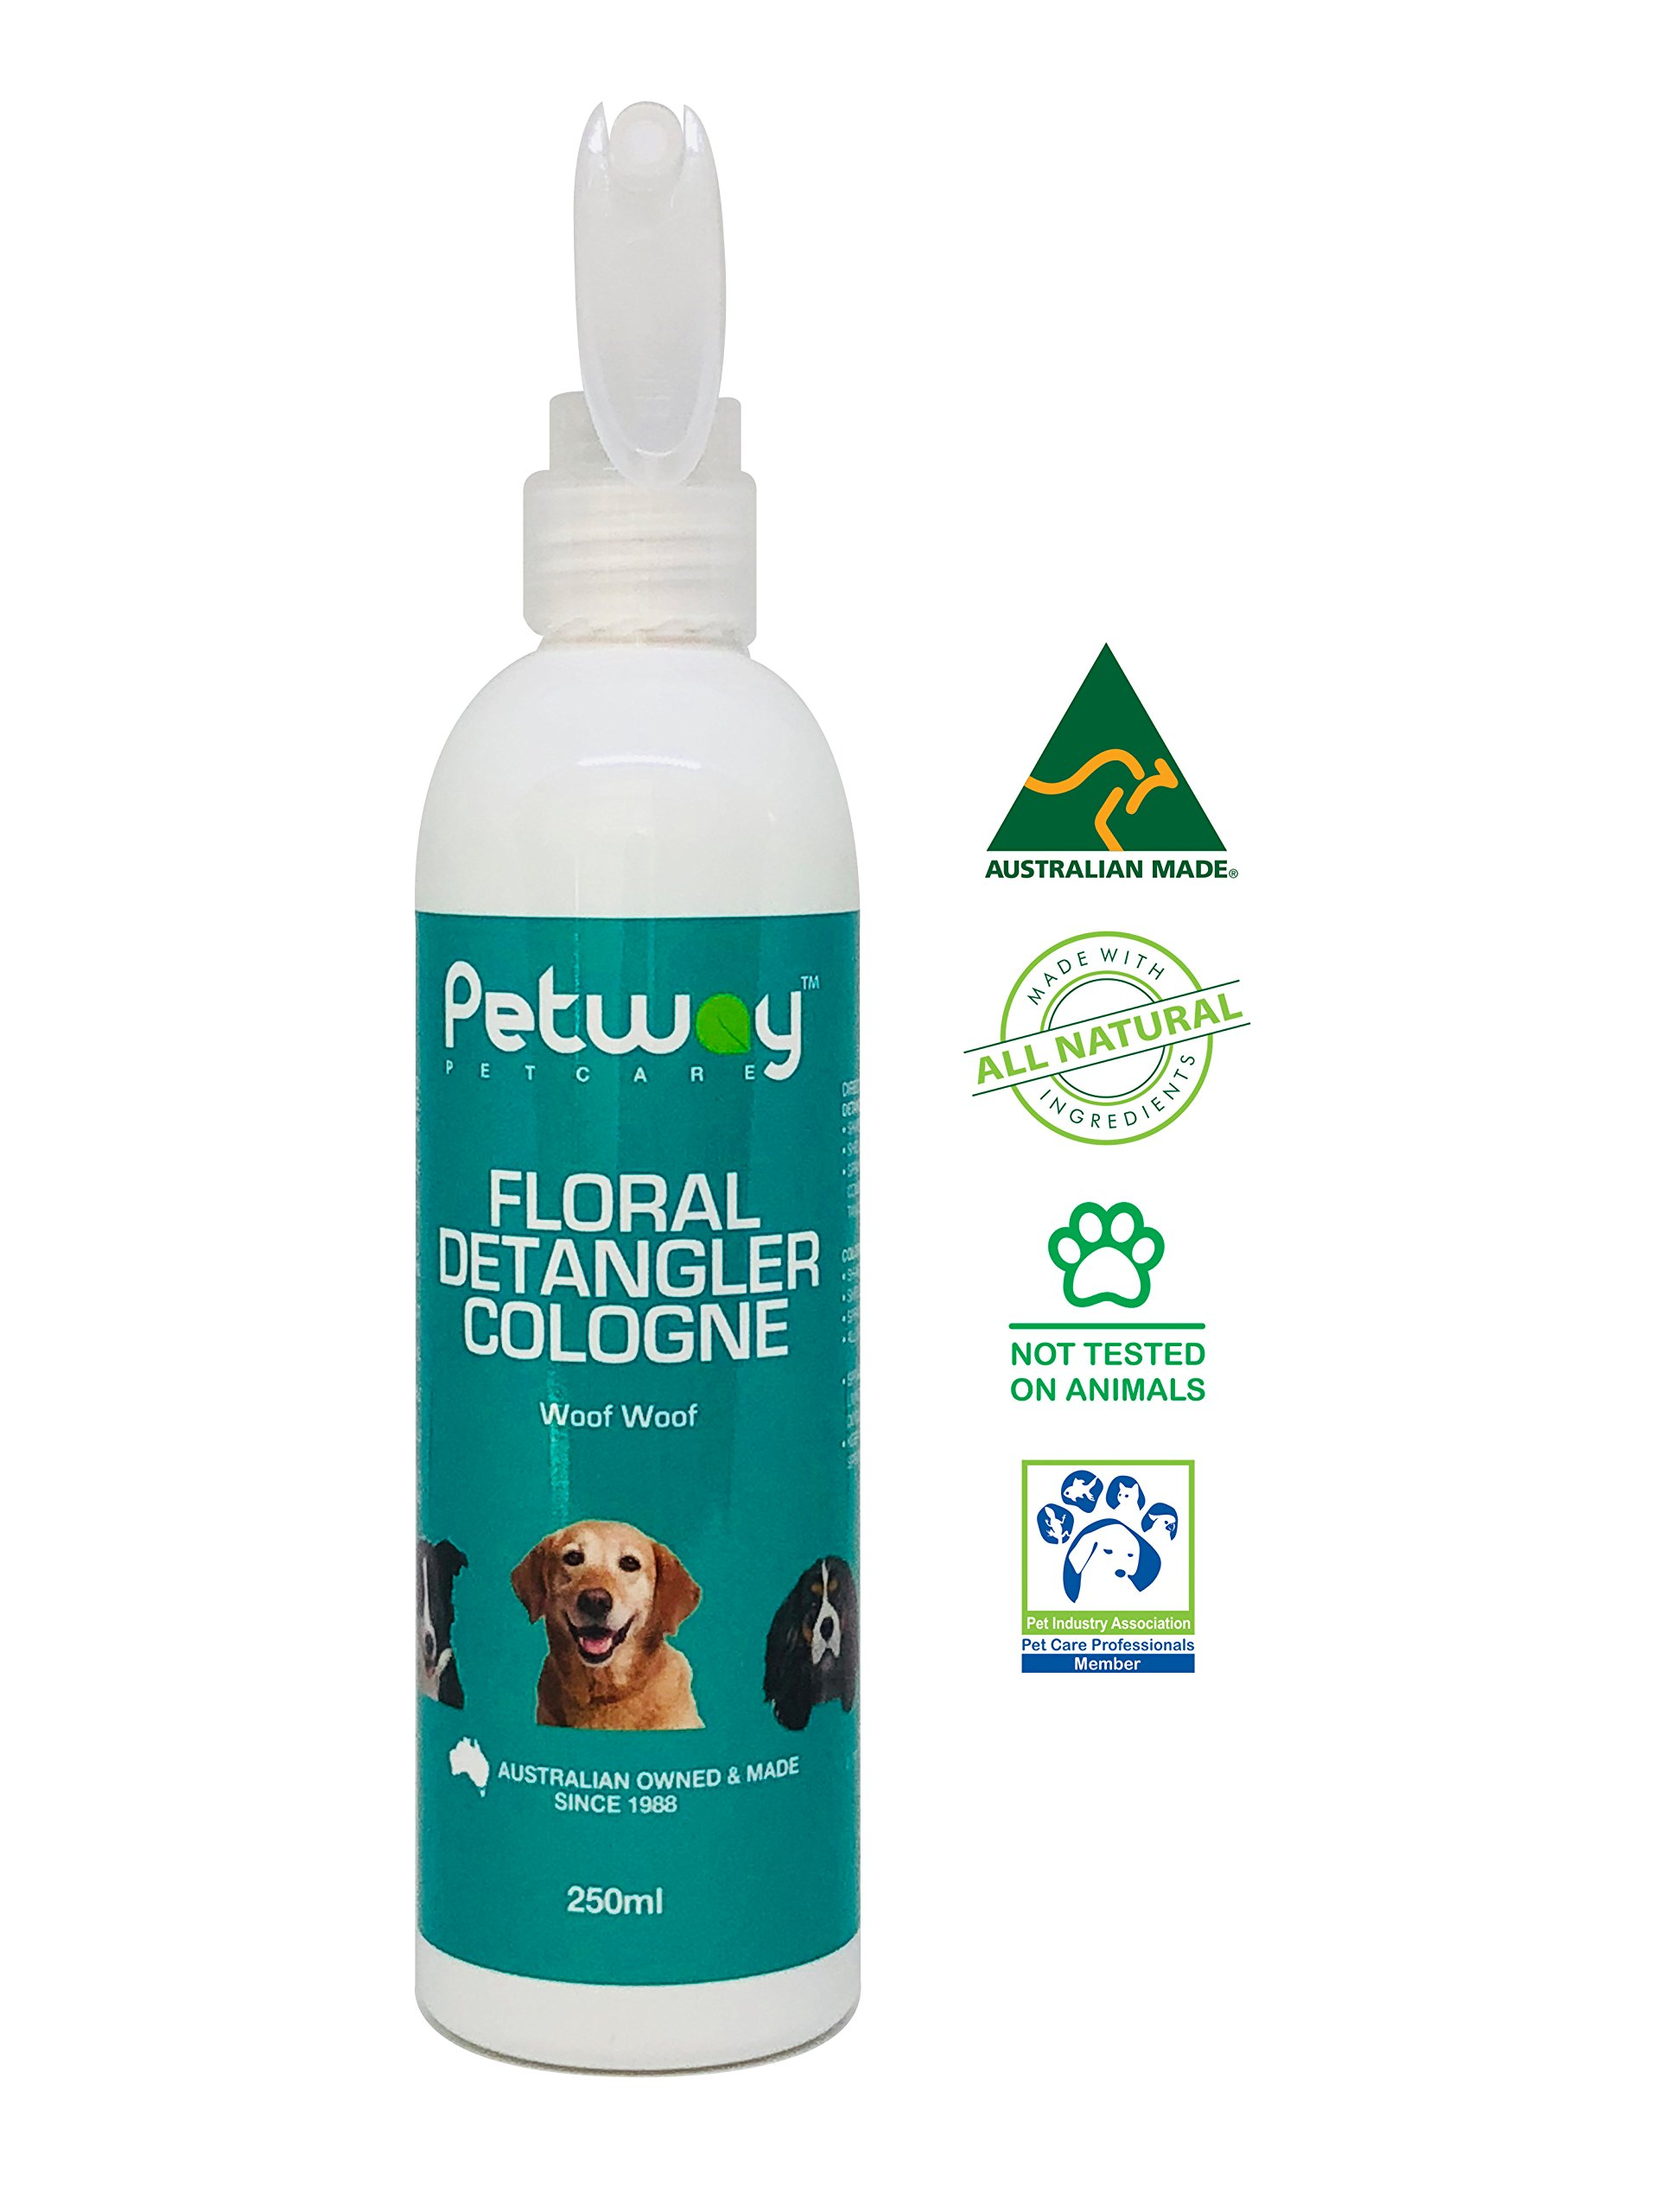 PETWAY Petcare Floral Detangler Cologne – Pet Cologne, Detangling and Dematting Spray with Deodorizing and Conditioning Qualities – Dog Grooming Detangler Conditioner Spray - 250ml by PETWAY (Image #1)